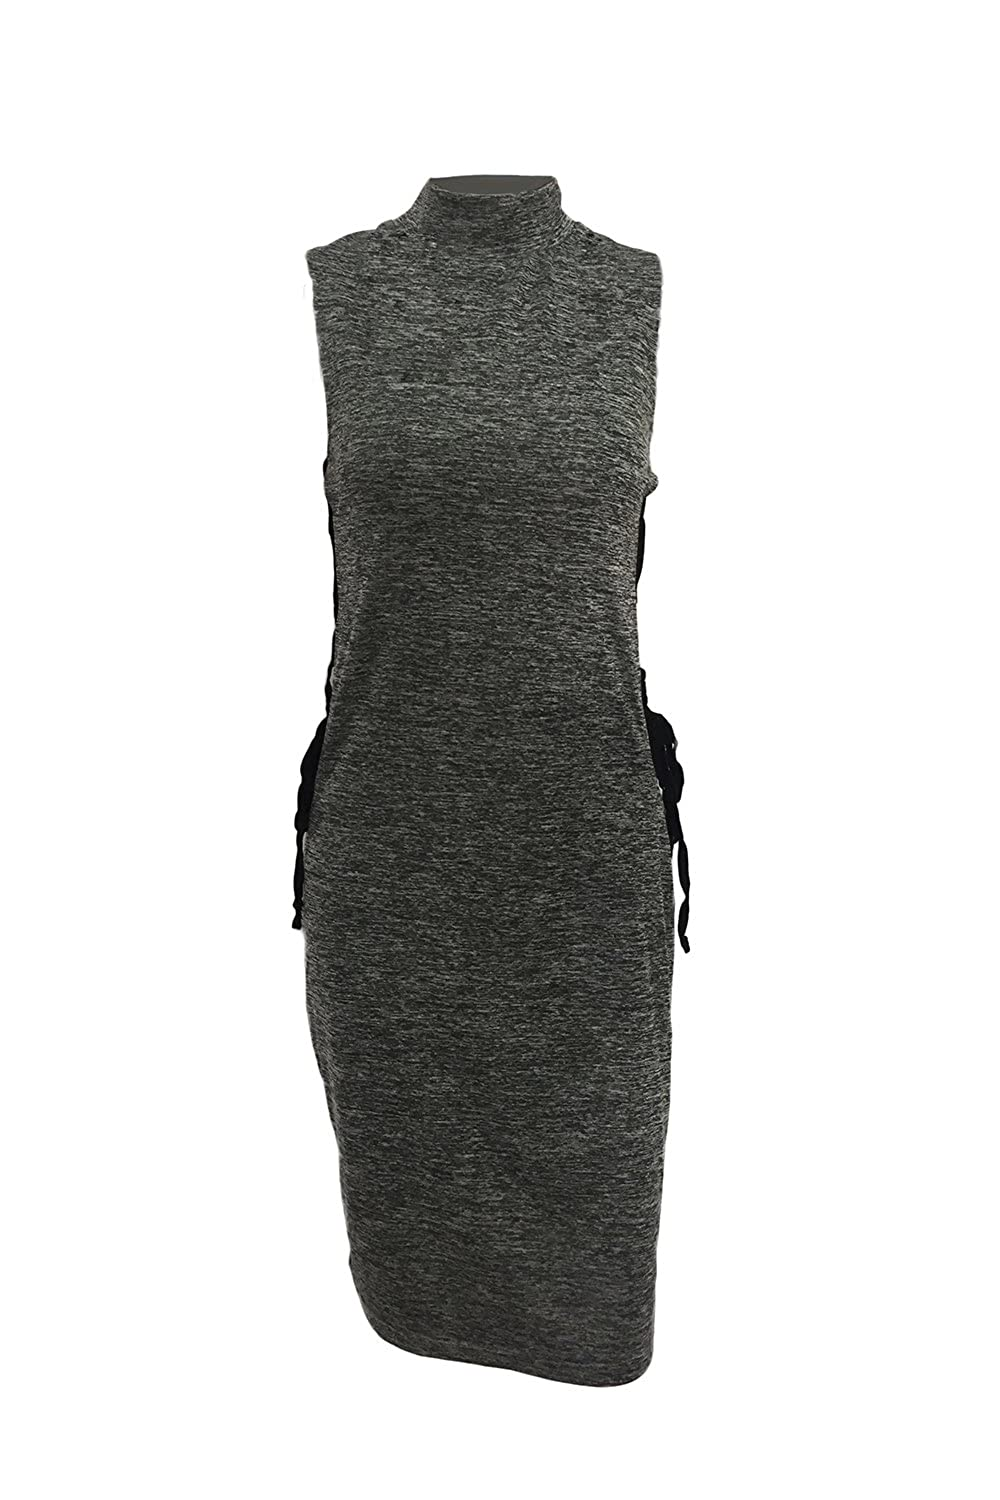 Women's Sexy Hollow Out Sleeveless Slim Bodycon Dress